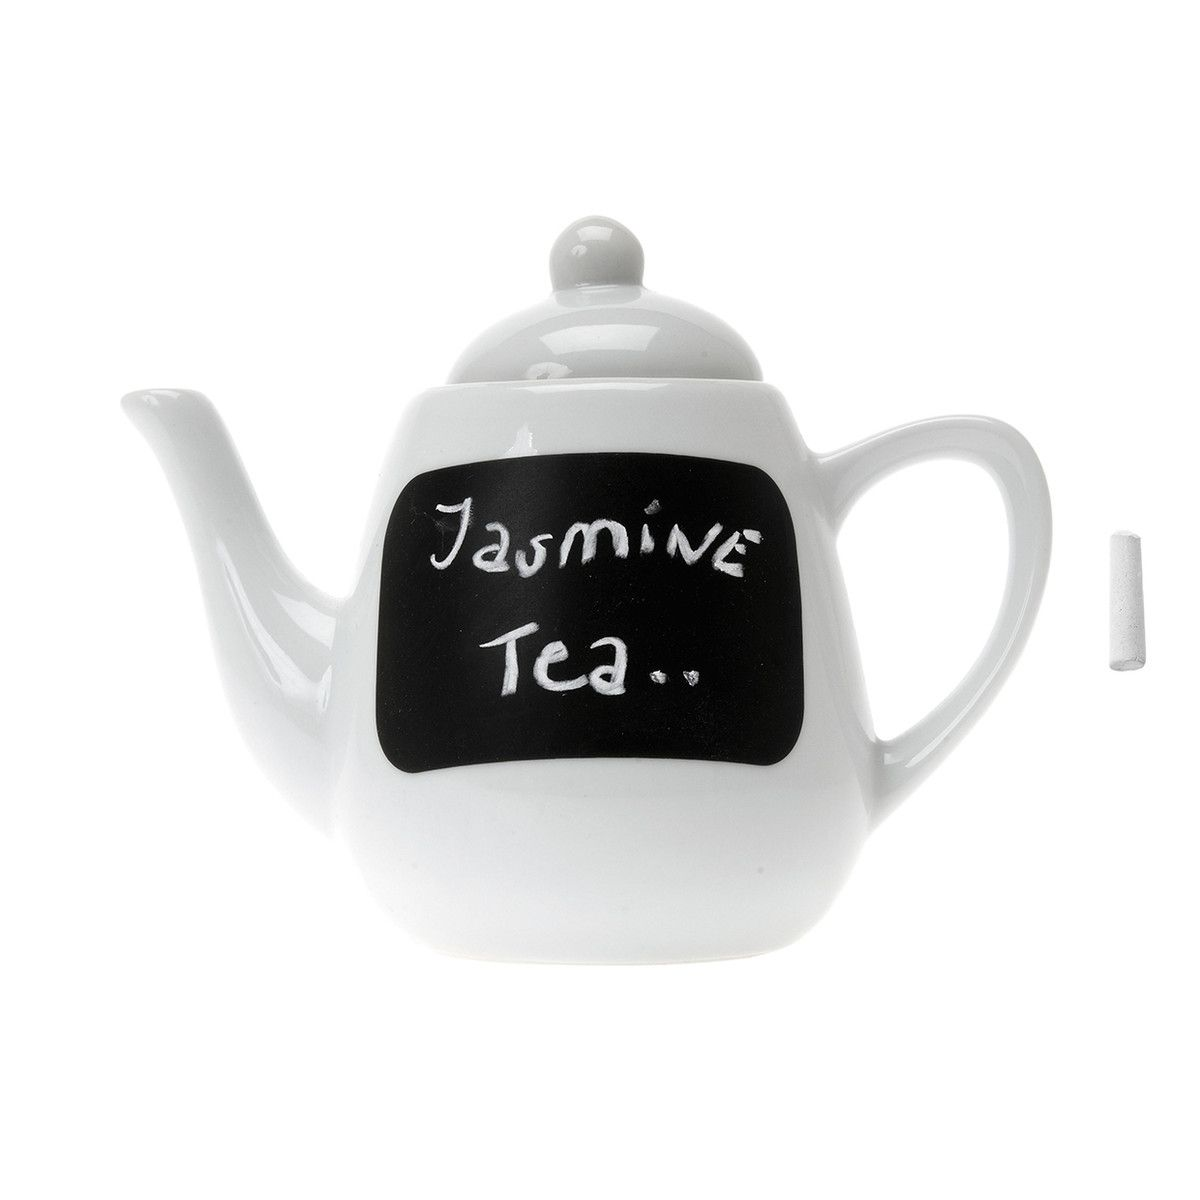 {Teapot Talk} by PT - if I had a tearoom, this would be a cool way to serve the tea!